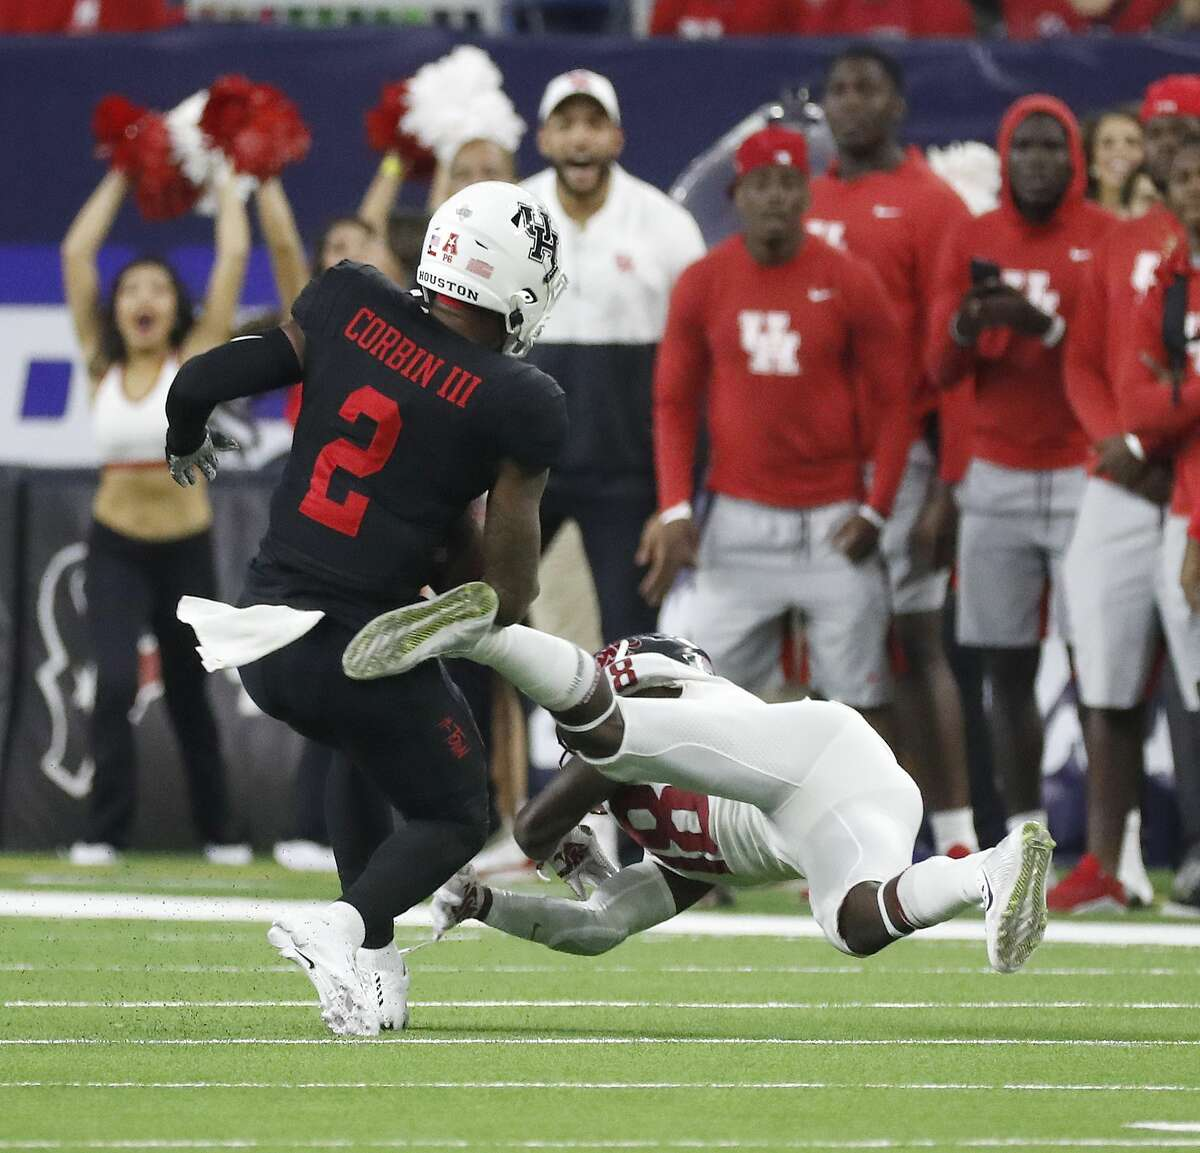 Keith Corbin is expected to return for one more year at UH after using his redshirt for 2019.